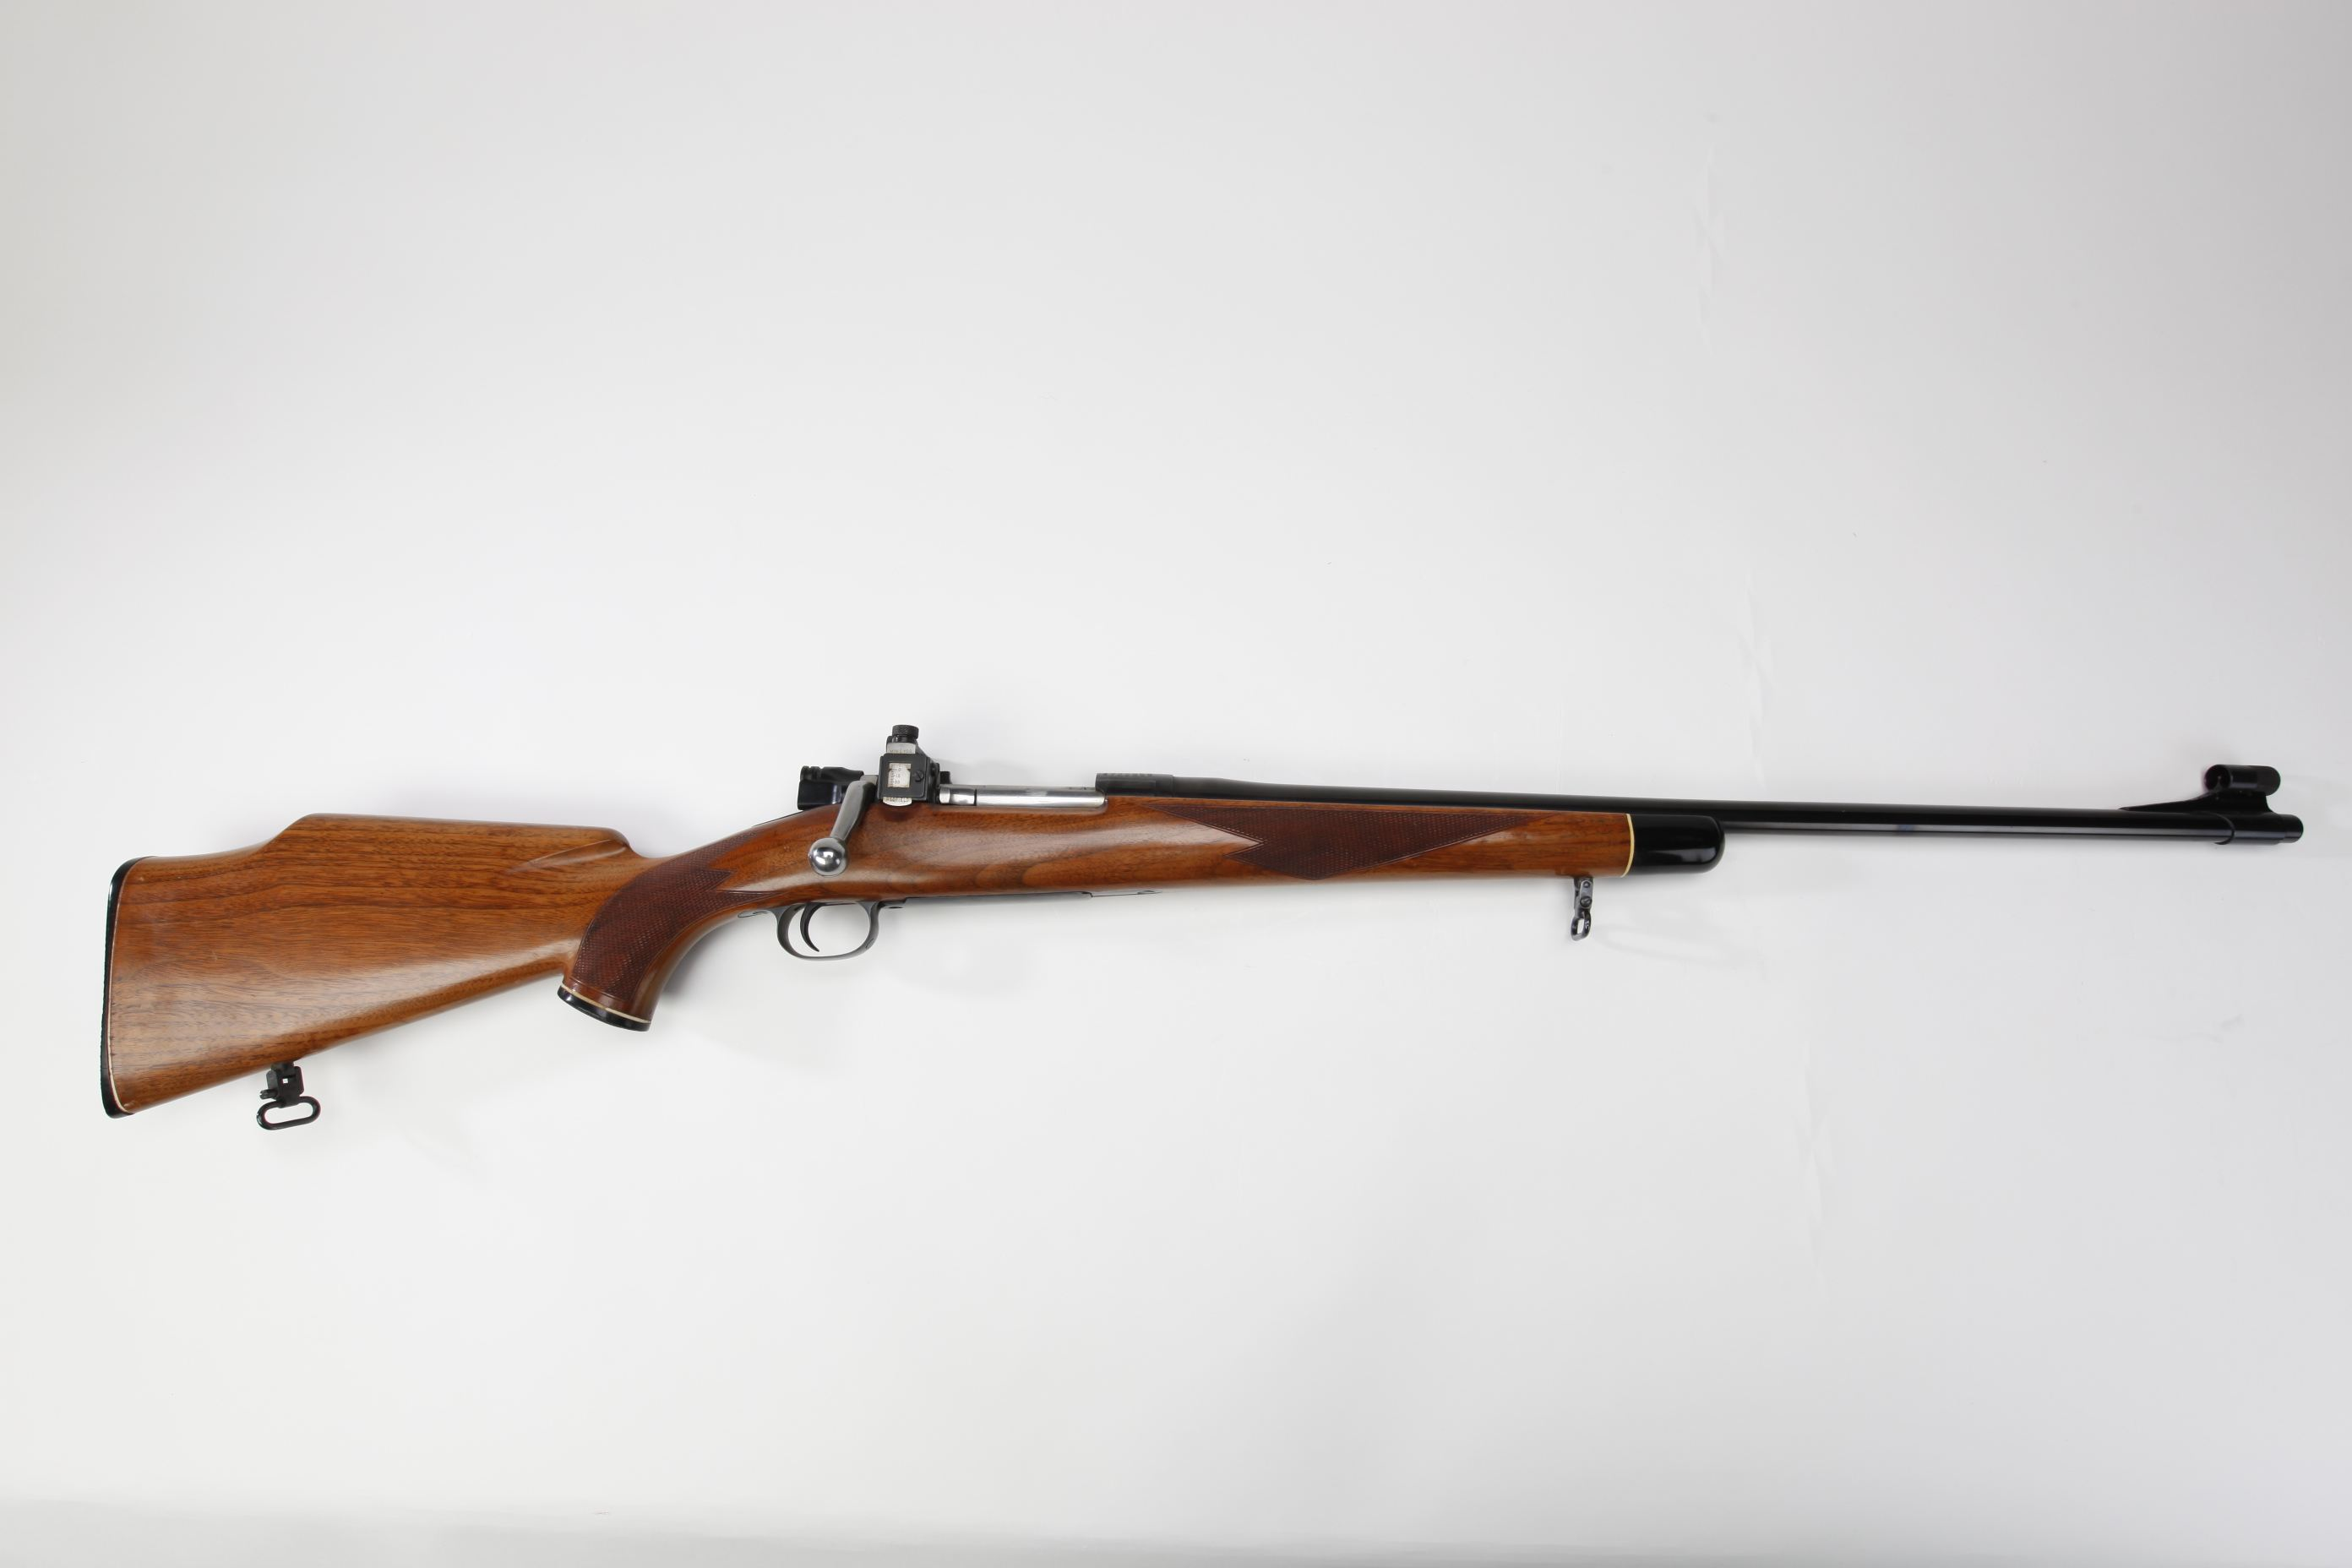 US Smith Corona Model 1903A3 Bolt Action Rifle